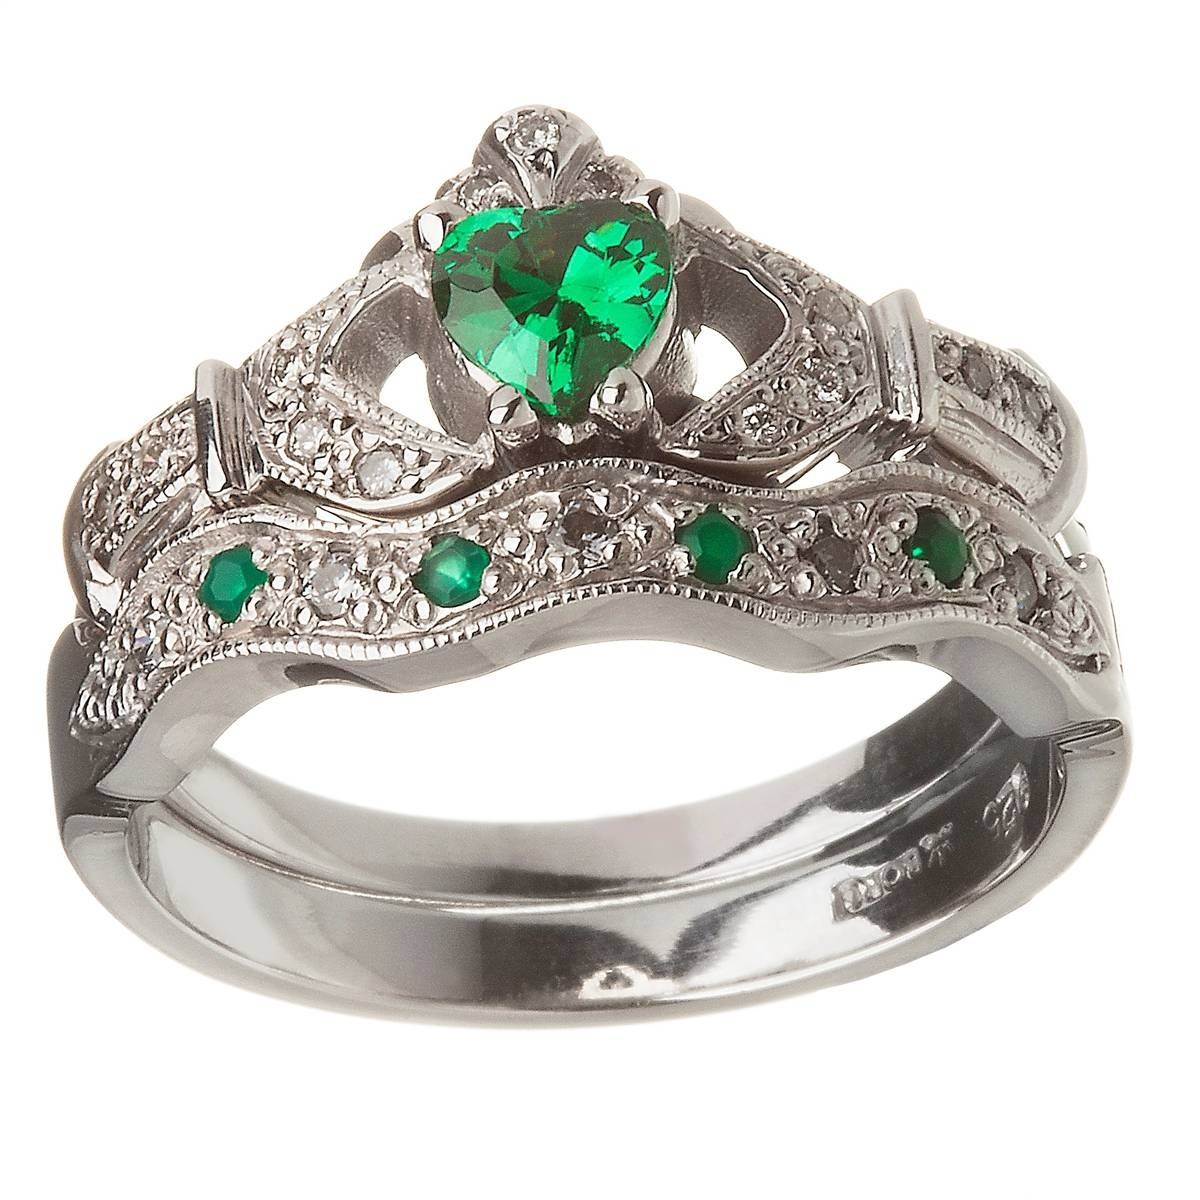 14K White Gold Emerald Set Heart Claddagh Ring & Wedding Ring Set Pertaining To Claddagh Engagement Rings (View 1 of 15)